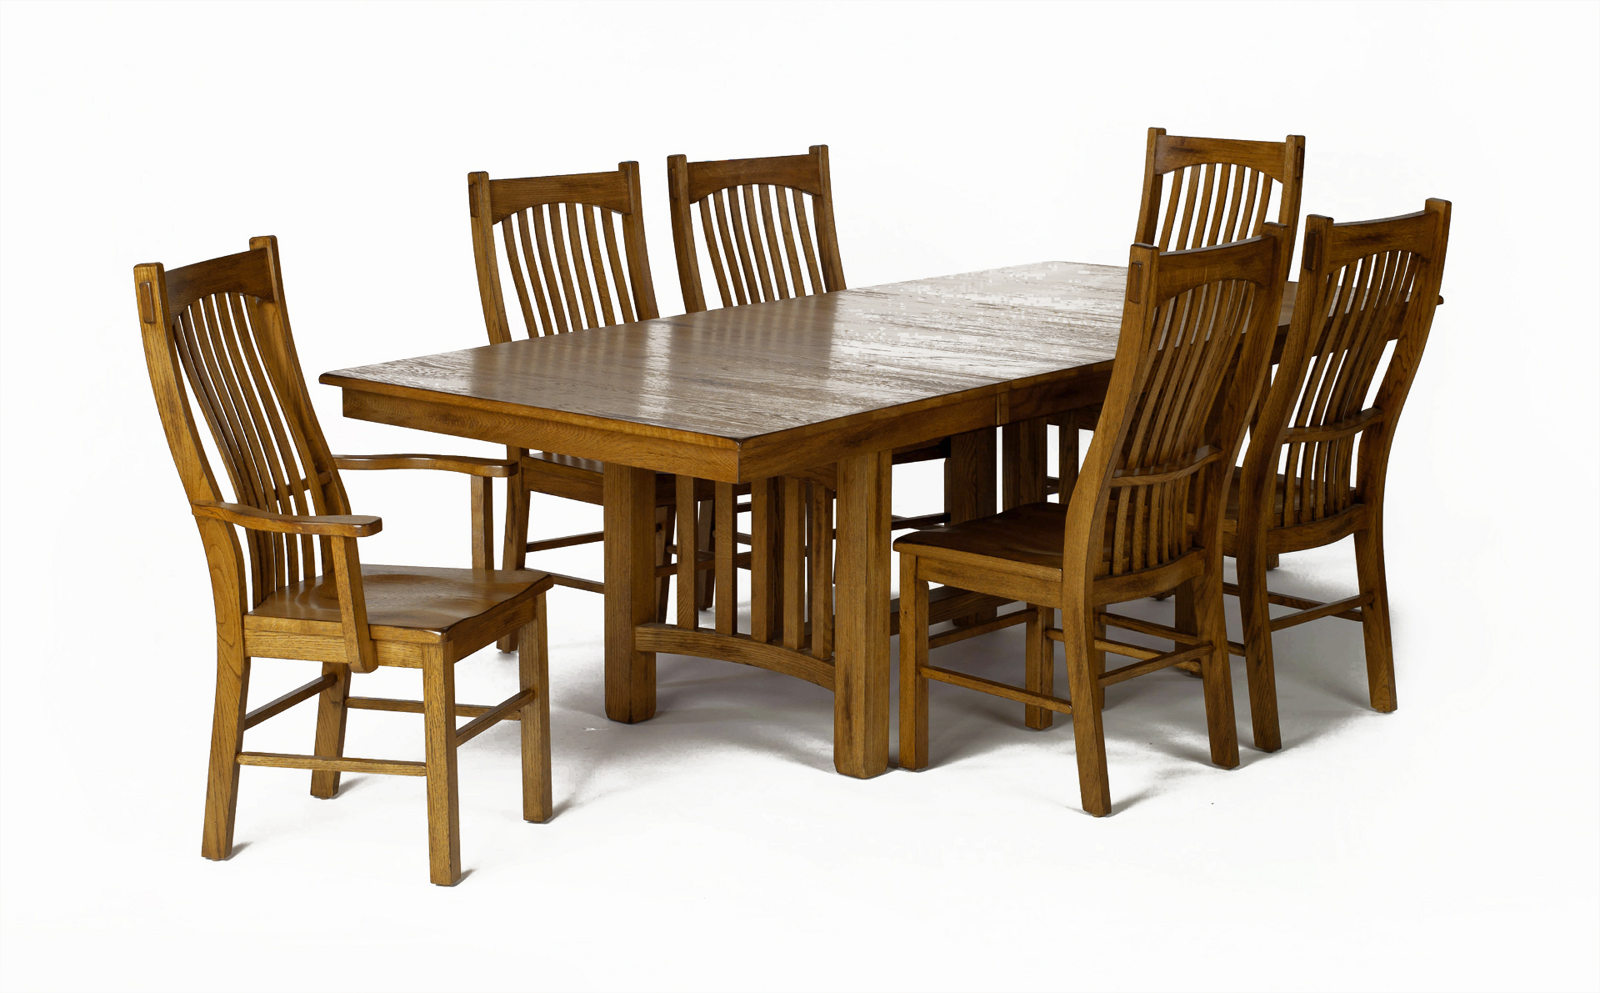 a america laurelhurst trestle dining set in rustic oak